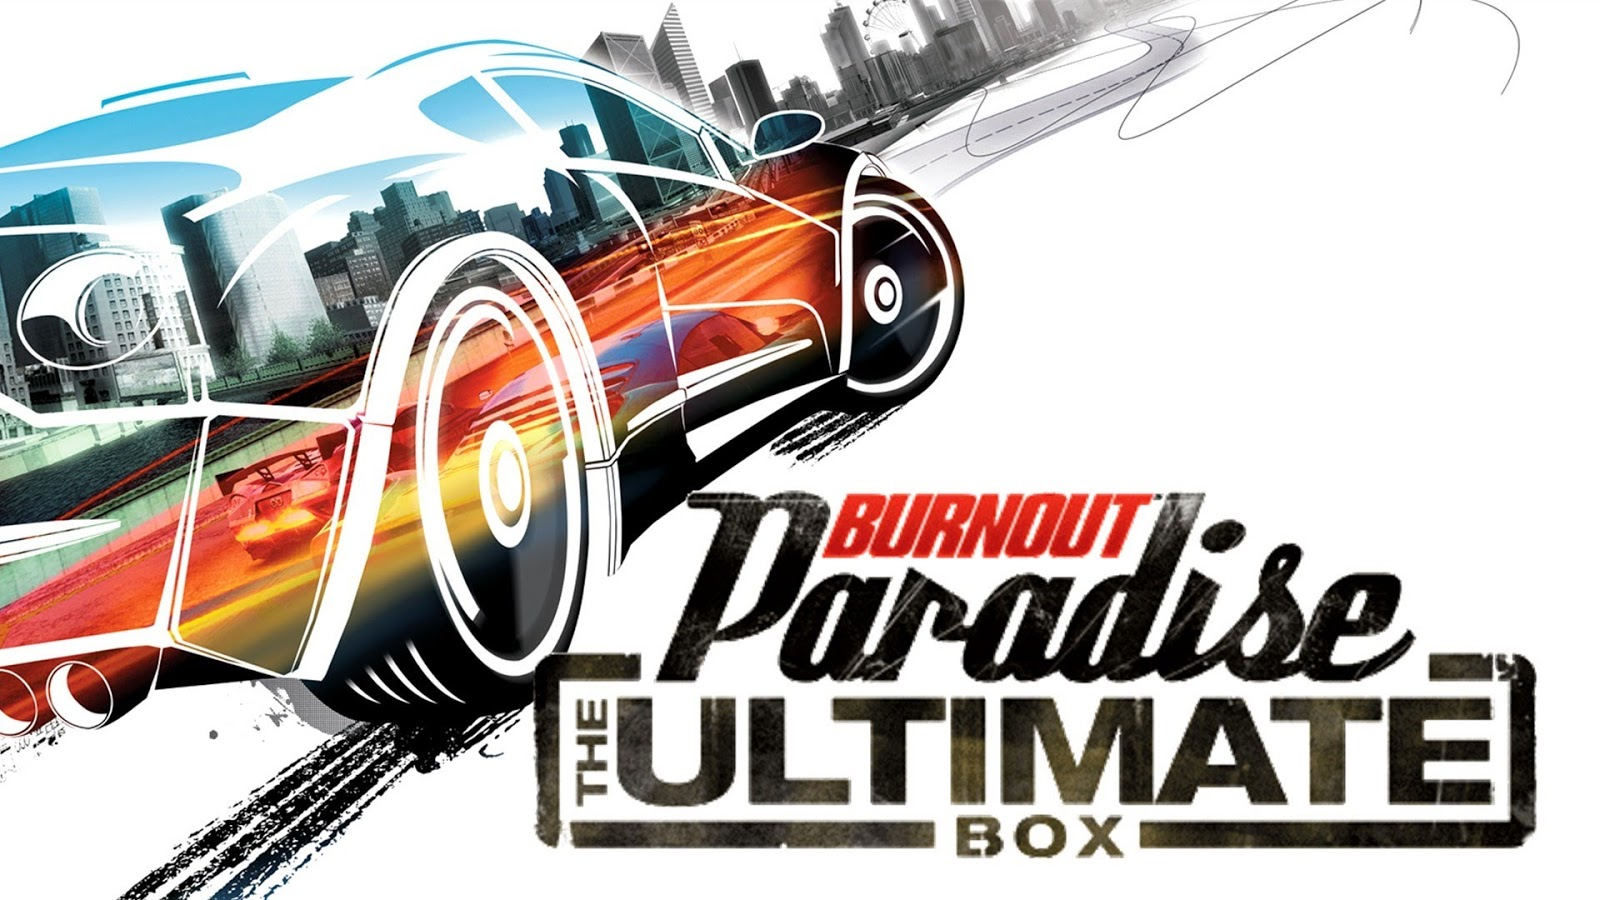 Burnout Paradise The Ultimate Box Free Download PC Game | Ladder of